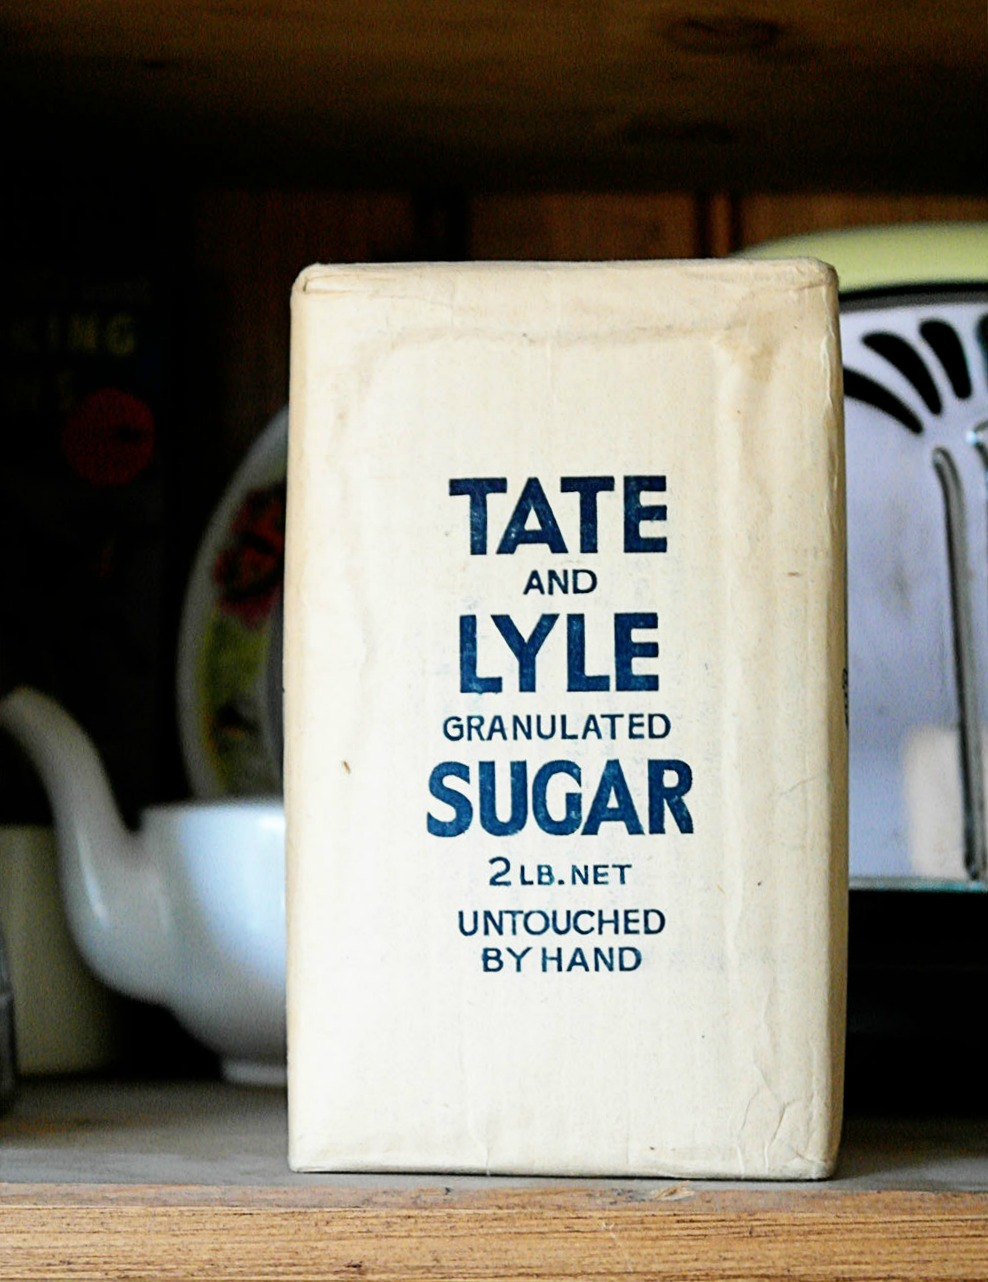 Tate and Lyle vintage sugar